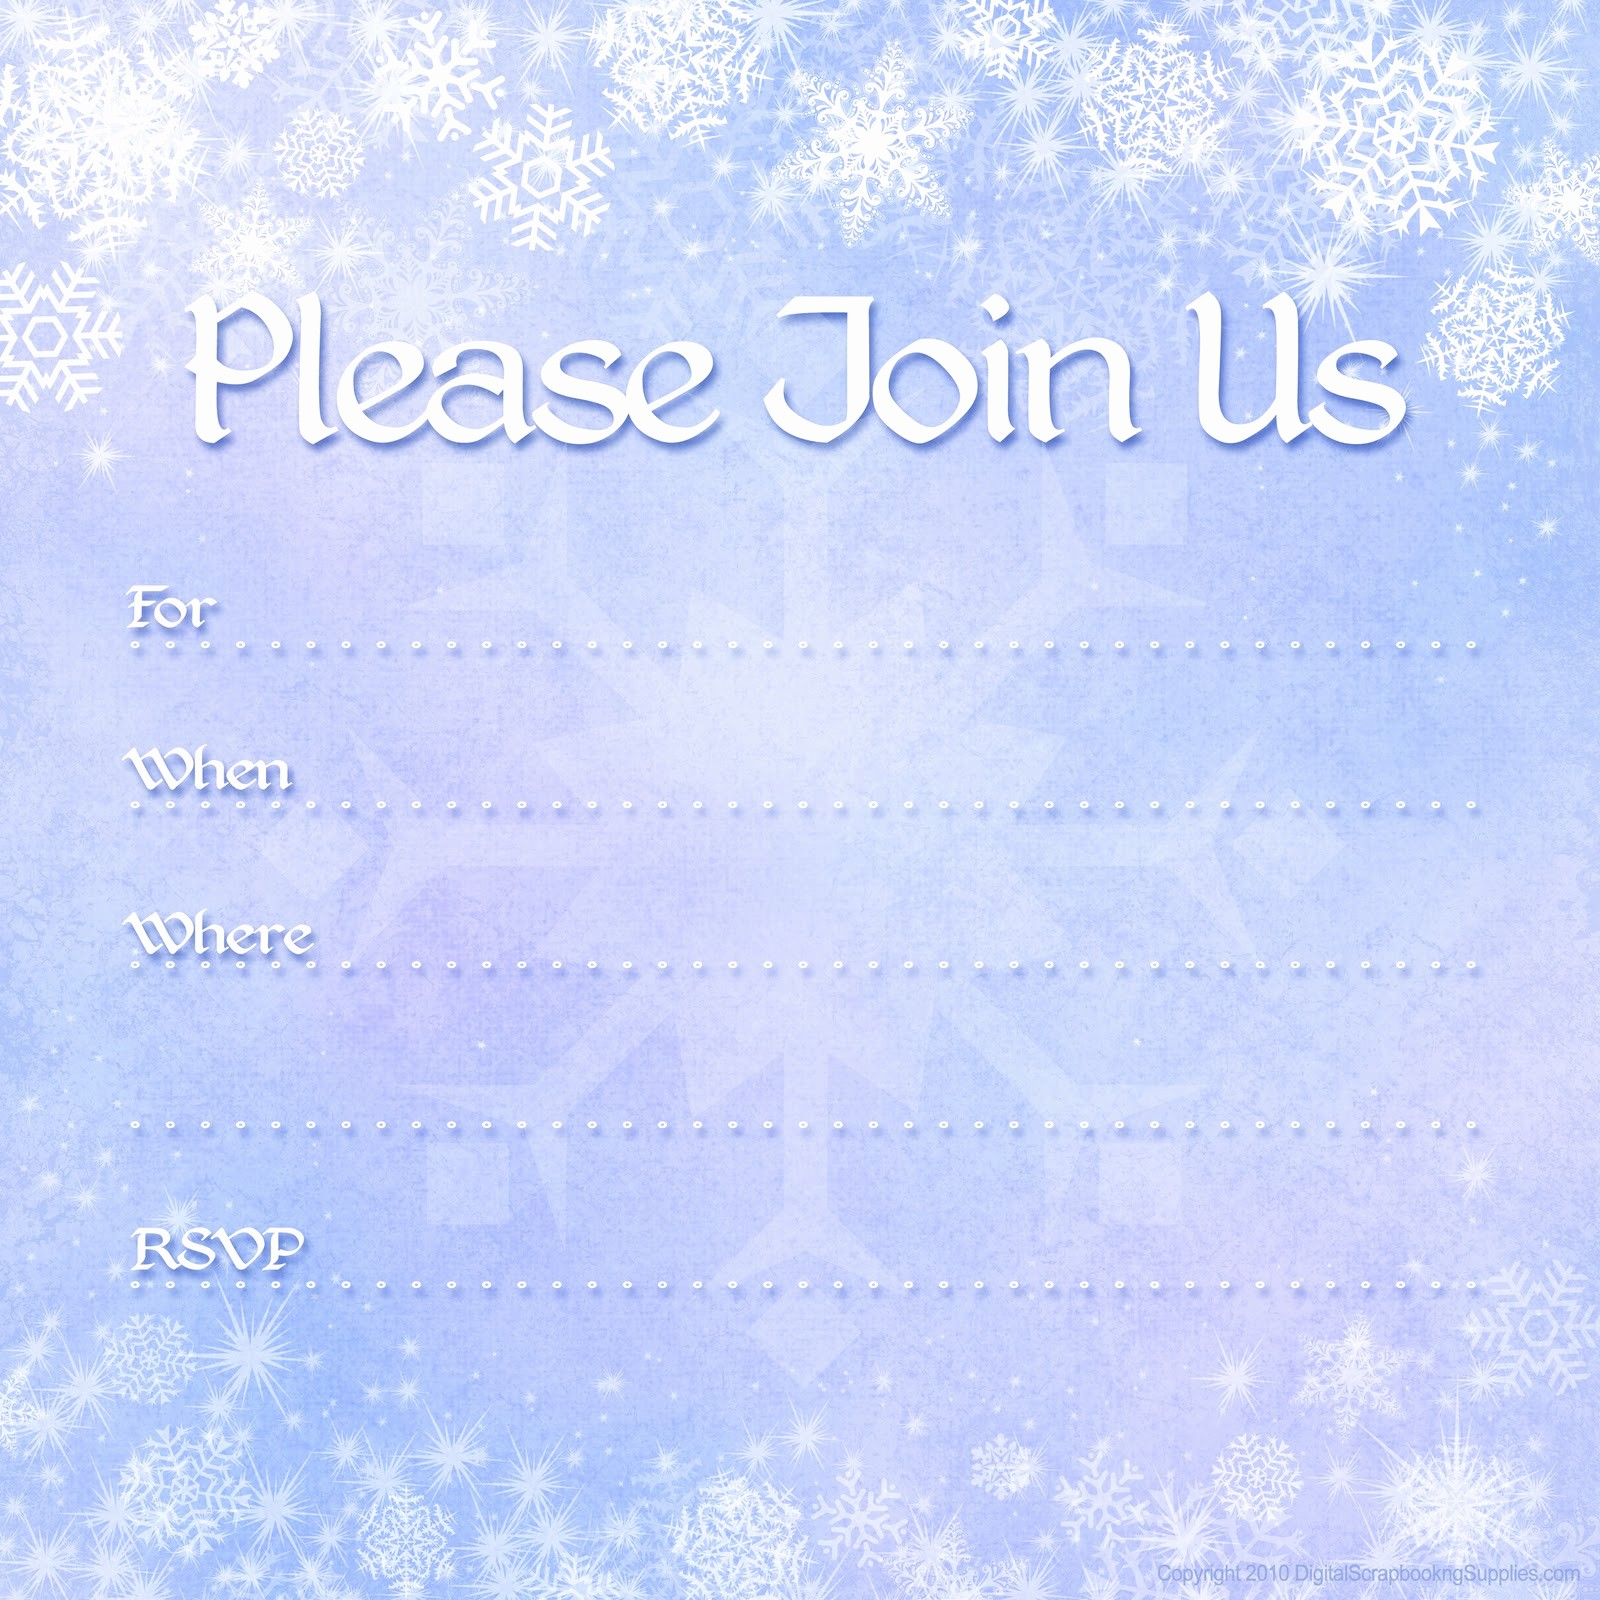 Winter Wonderland Invitation Template Free Luxury Free Printable Party Invitations Free Winter Holiday